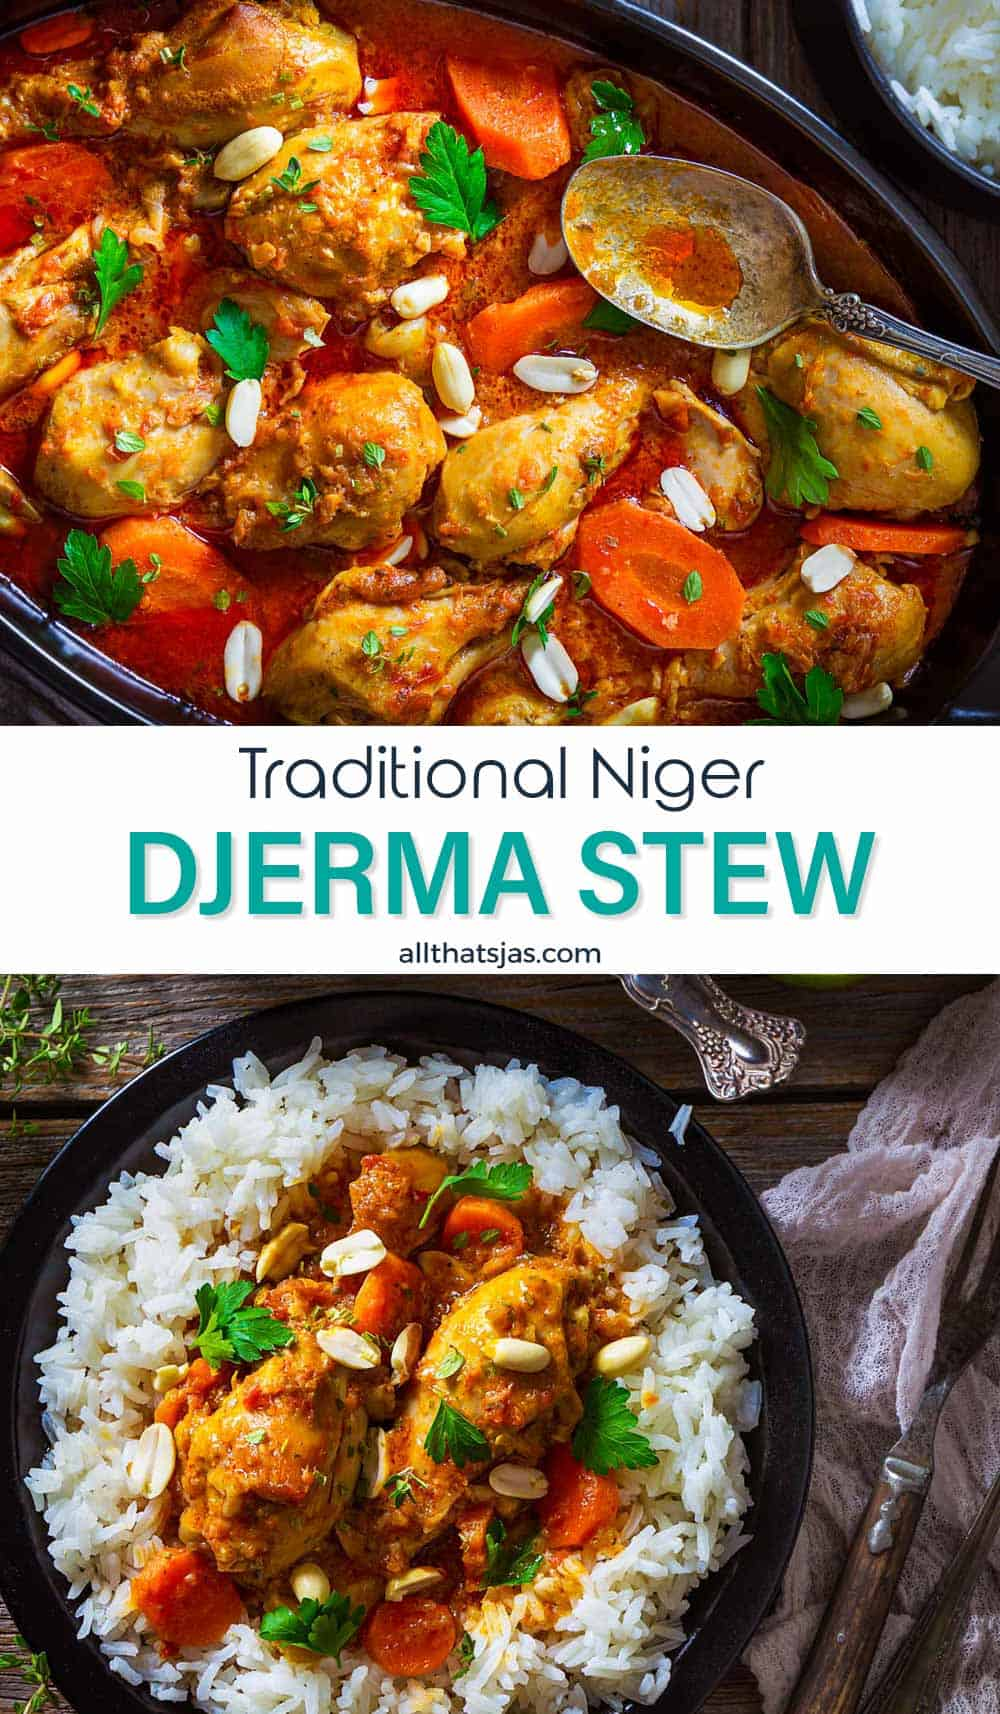 Two photo image of traditional Niger stew Djerma with text overlay in the middle.